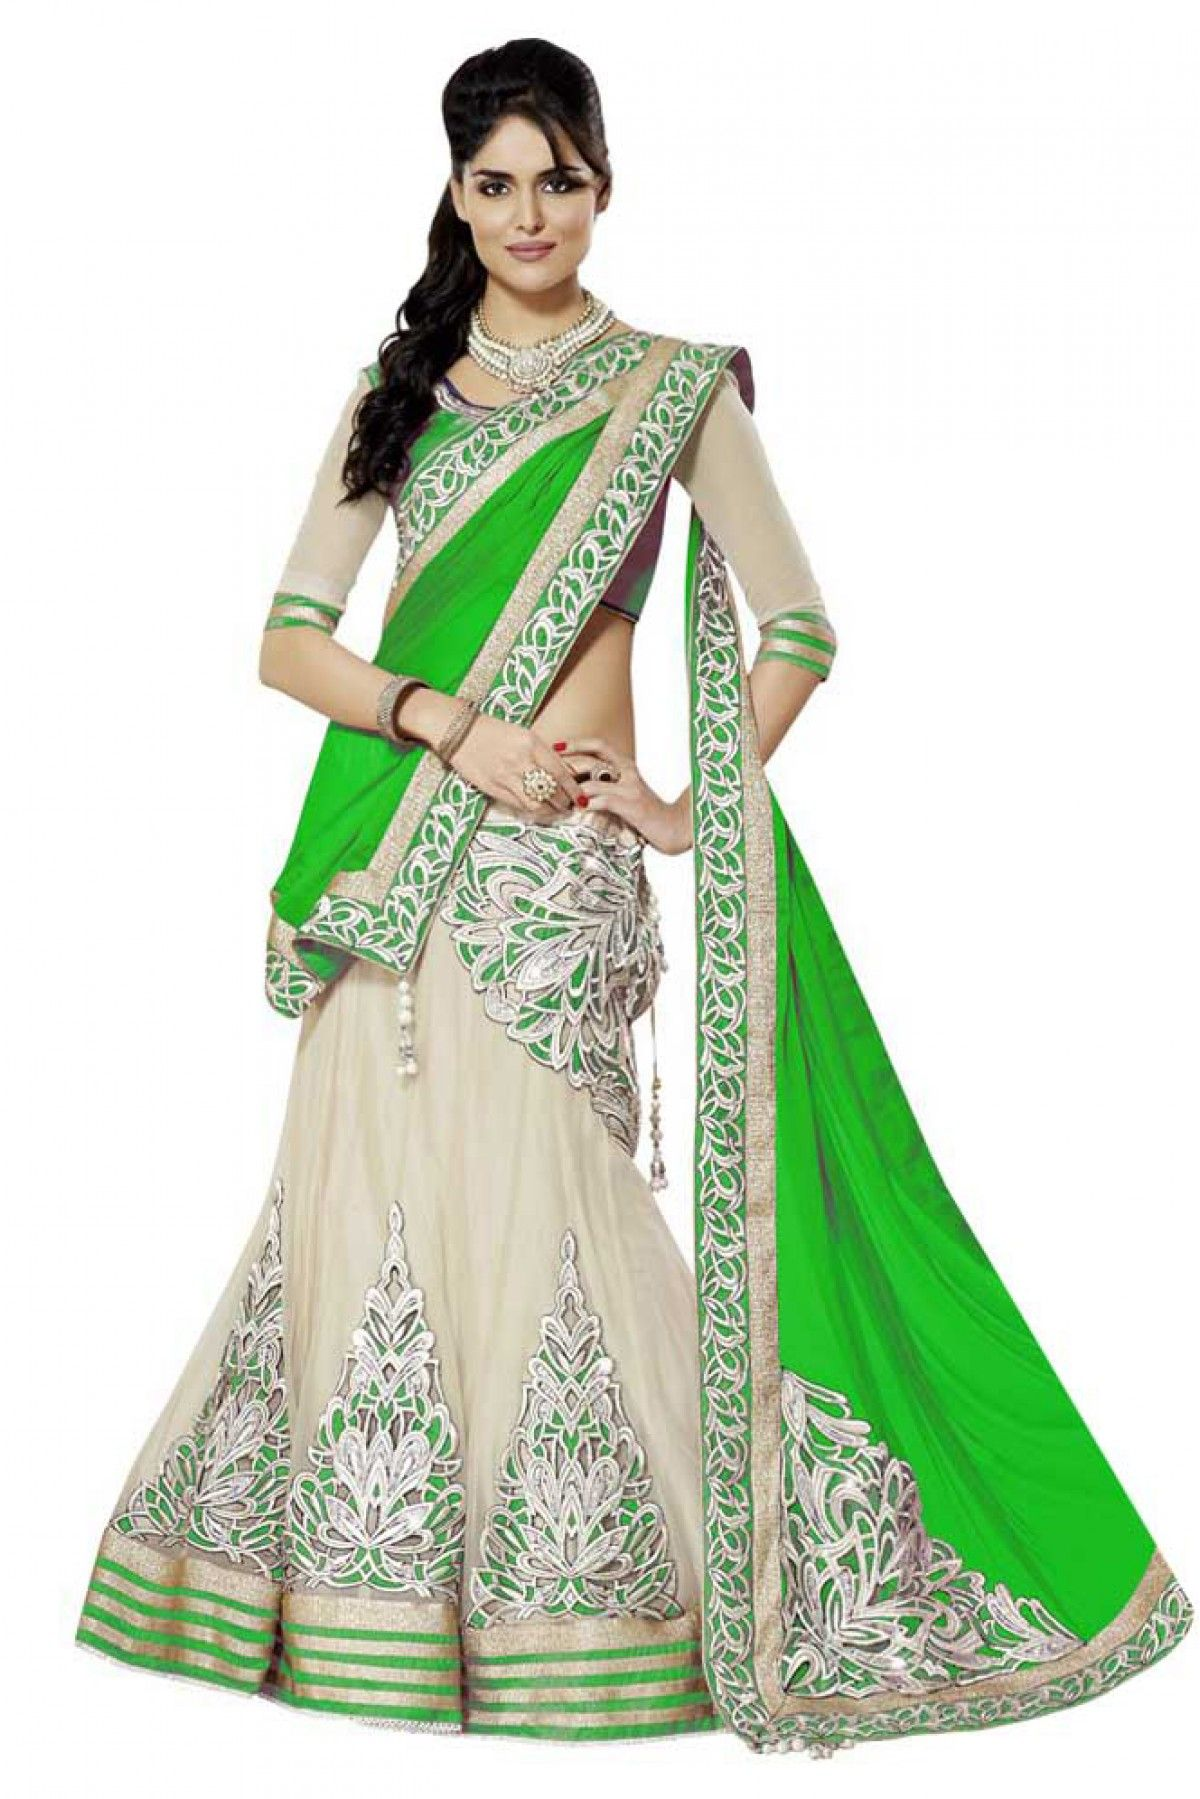 d007718117 Georgette Party Wear Lehenga Choli in Green Colour.It comes with matching  Dupatta and Choli.It is crafted with Lace Work,Patch Work.